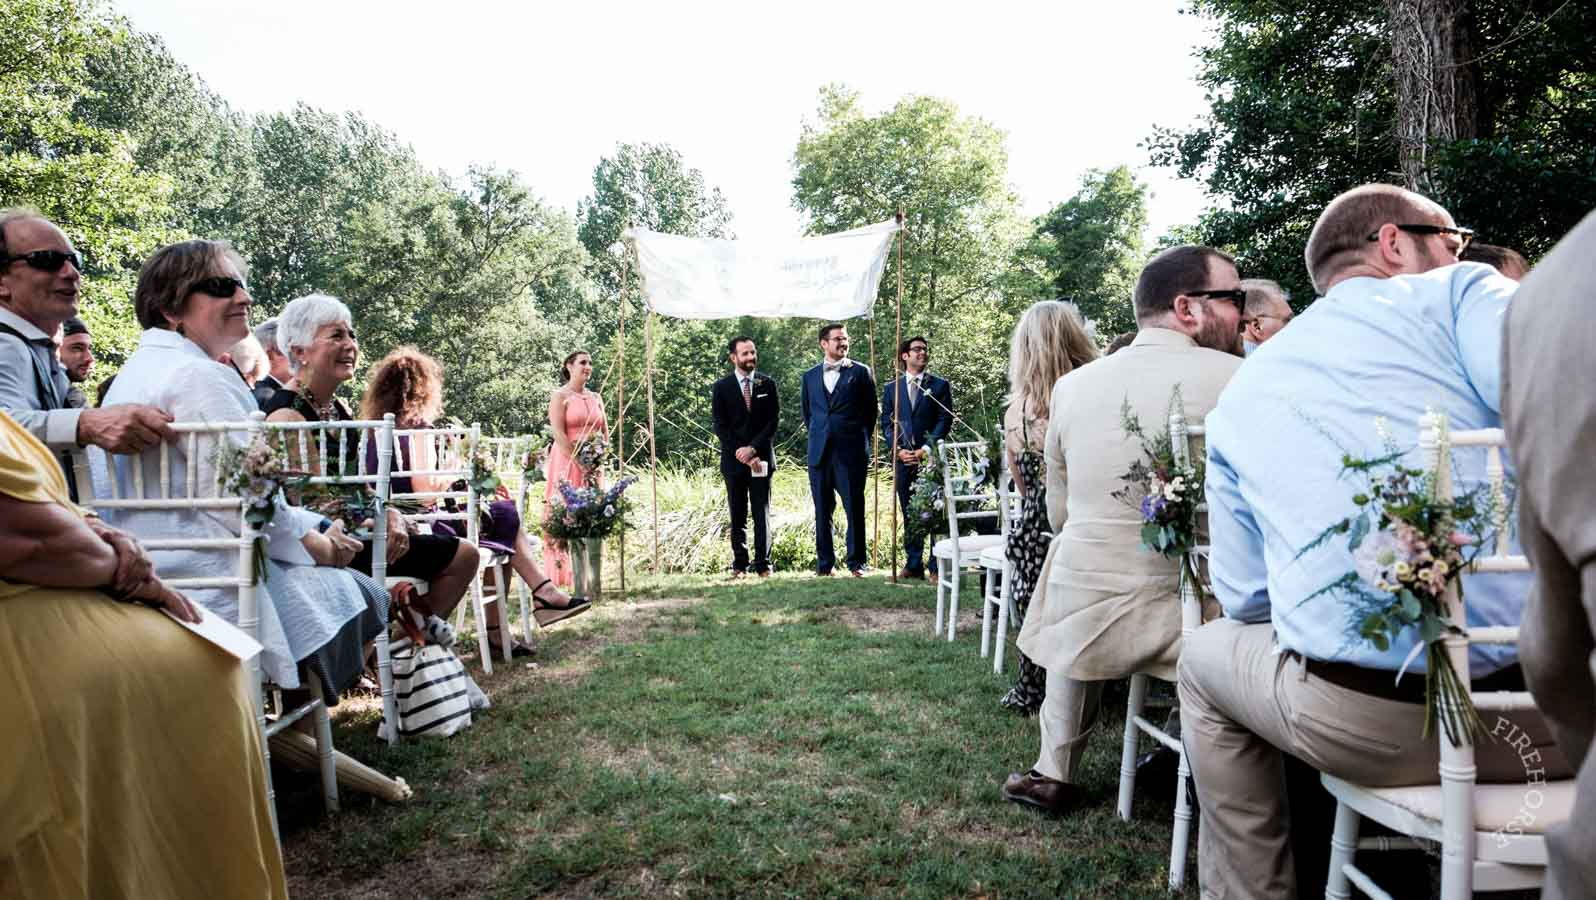 Lot-et-Garonne-Wedding-Photography-207